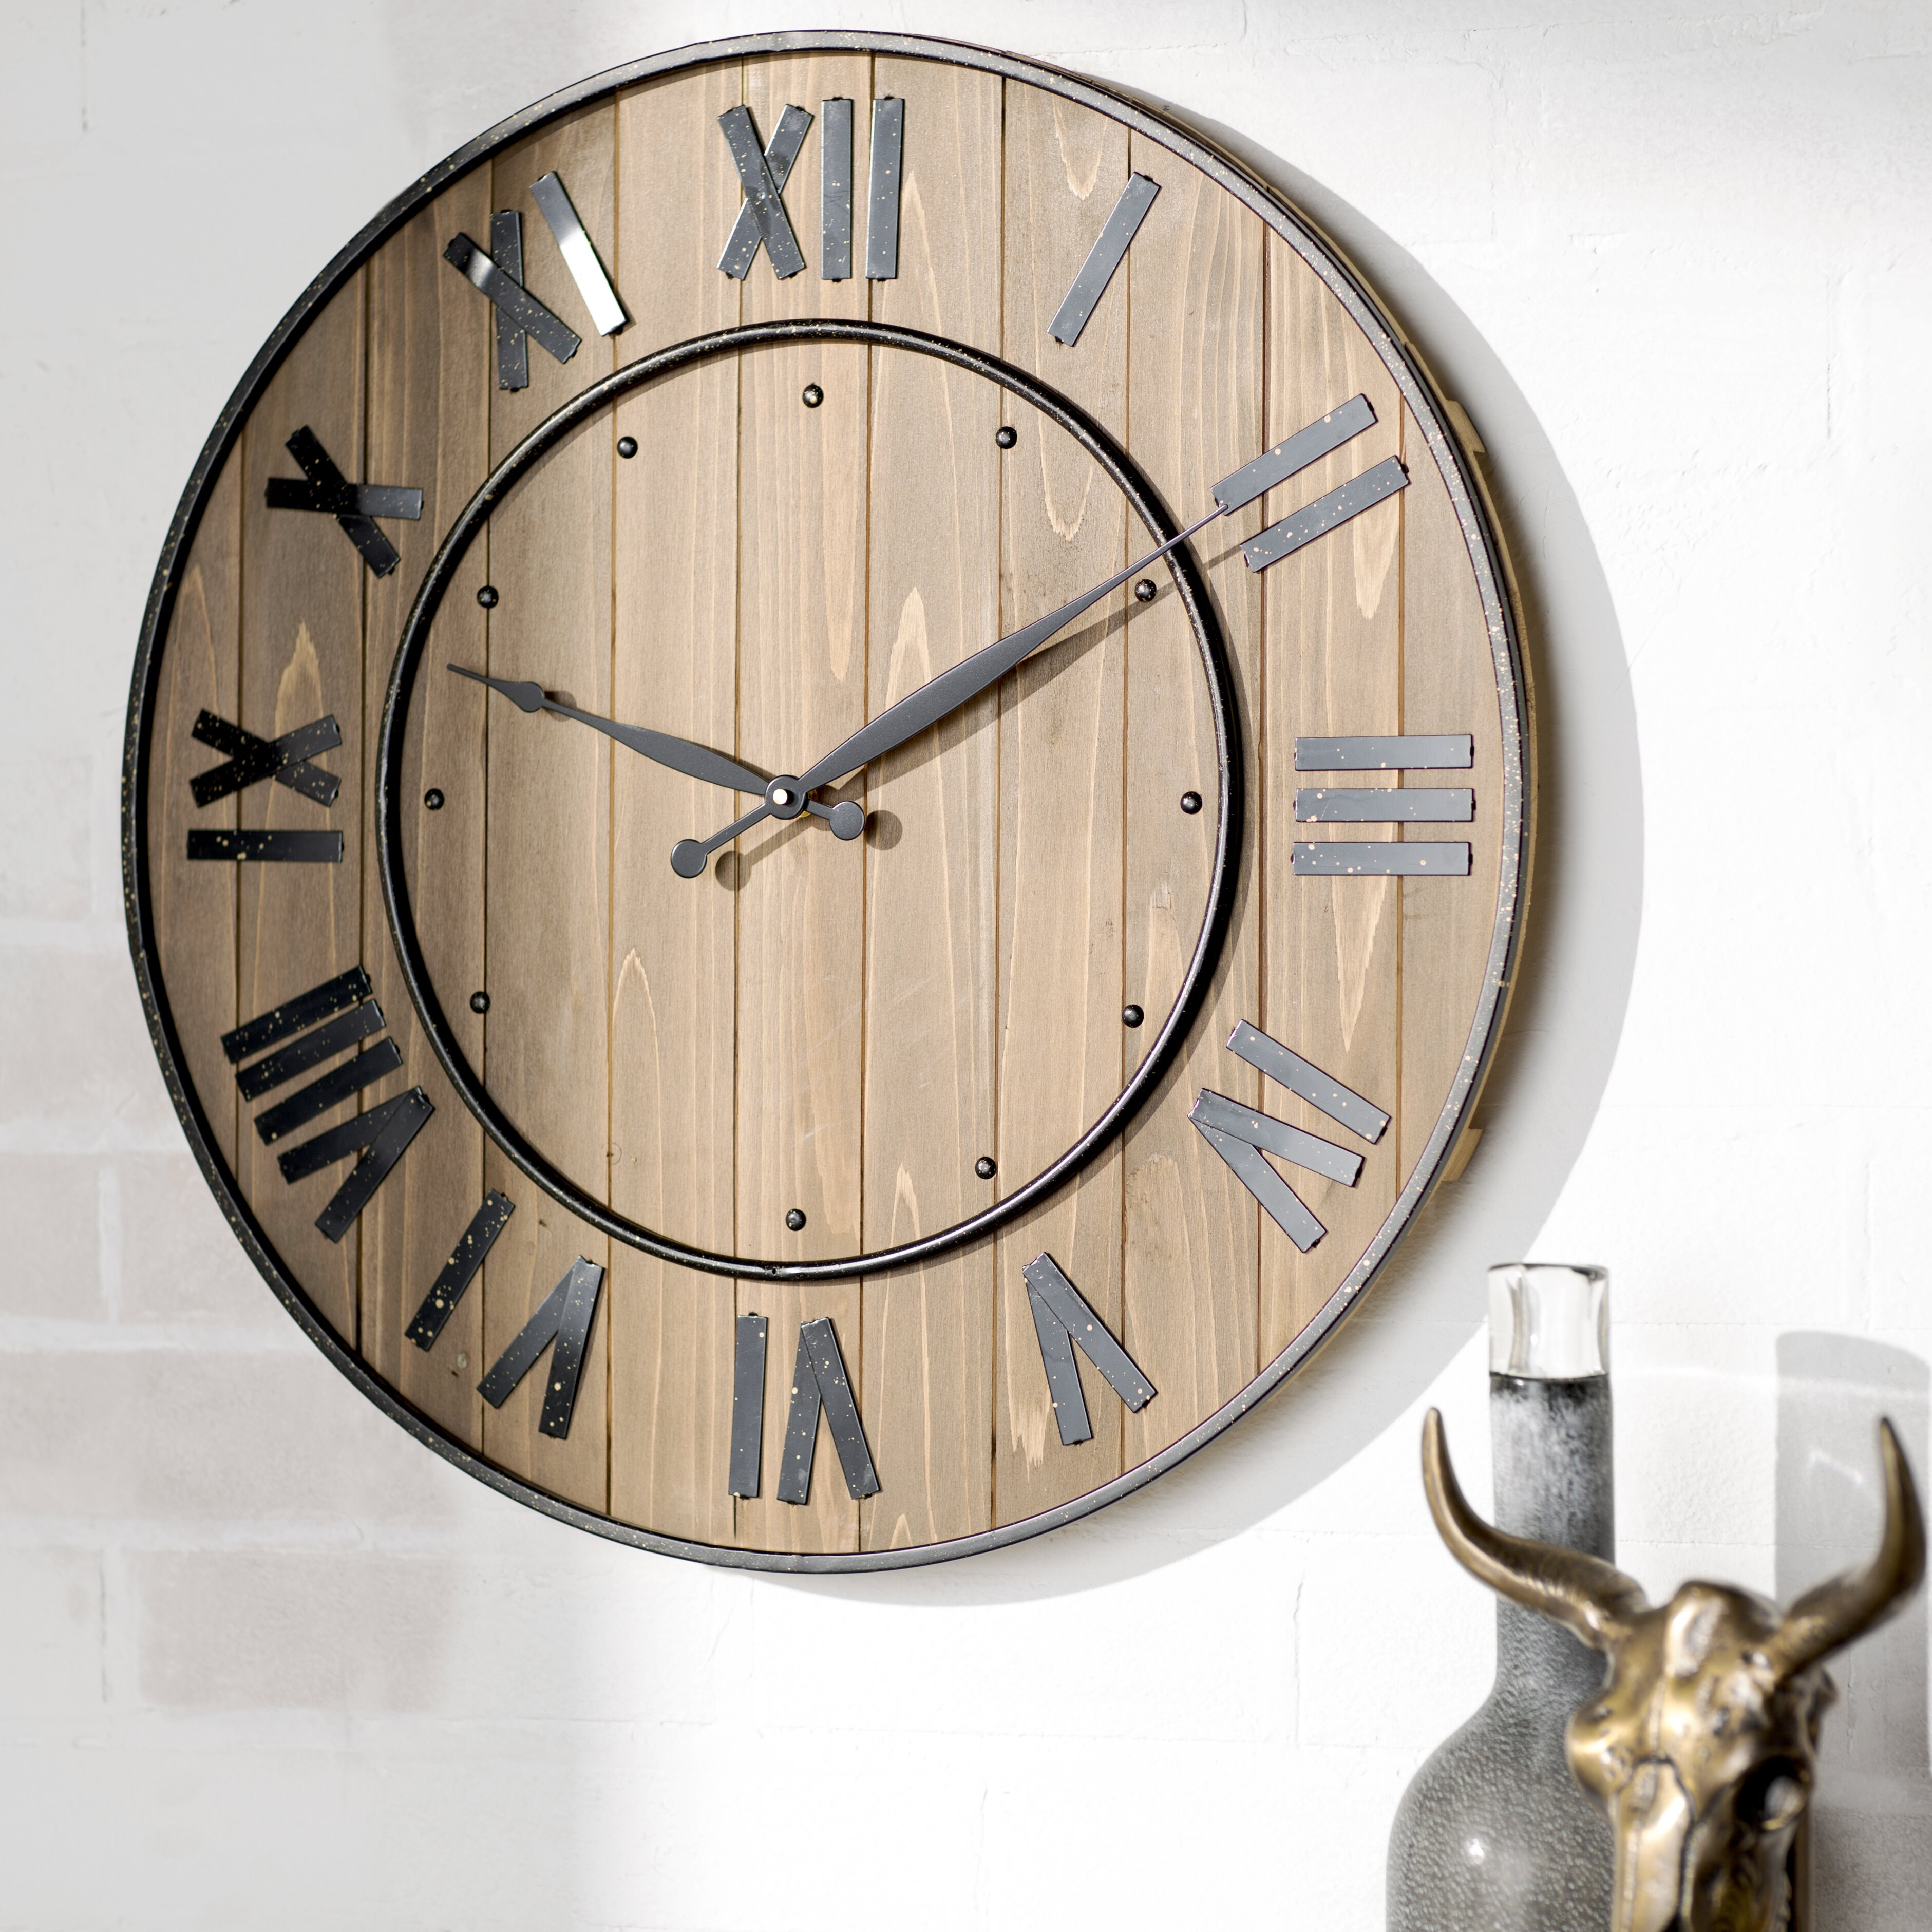 Trent austin design northrop wine barrel 24 wall clock reviews - Extra large digital wall clock ...